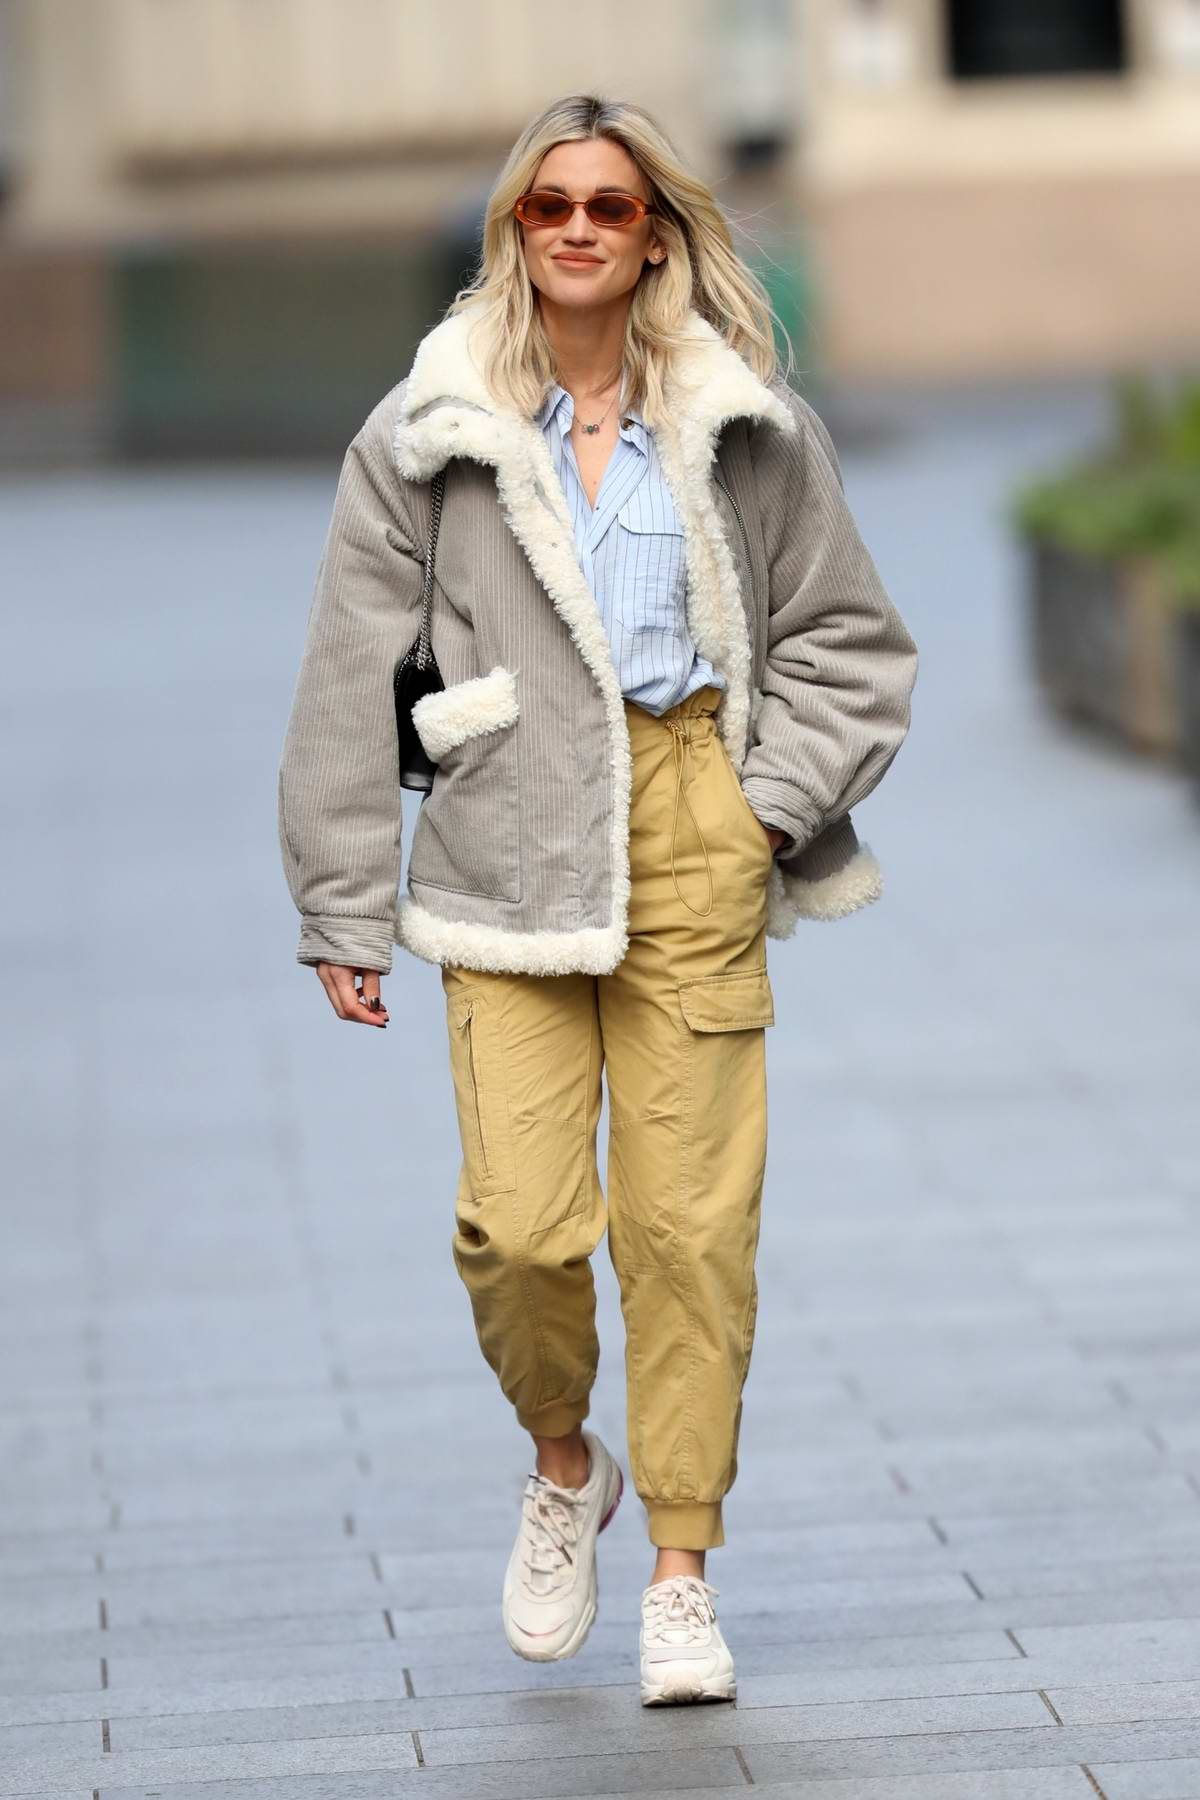 Ashley Roberts wears a grey fur-lined jacket and khaki trousers as she leaves Heart Radio in London, UK